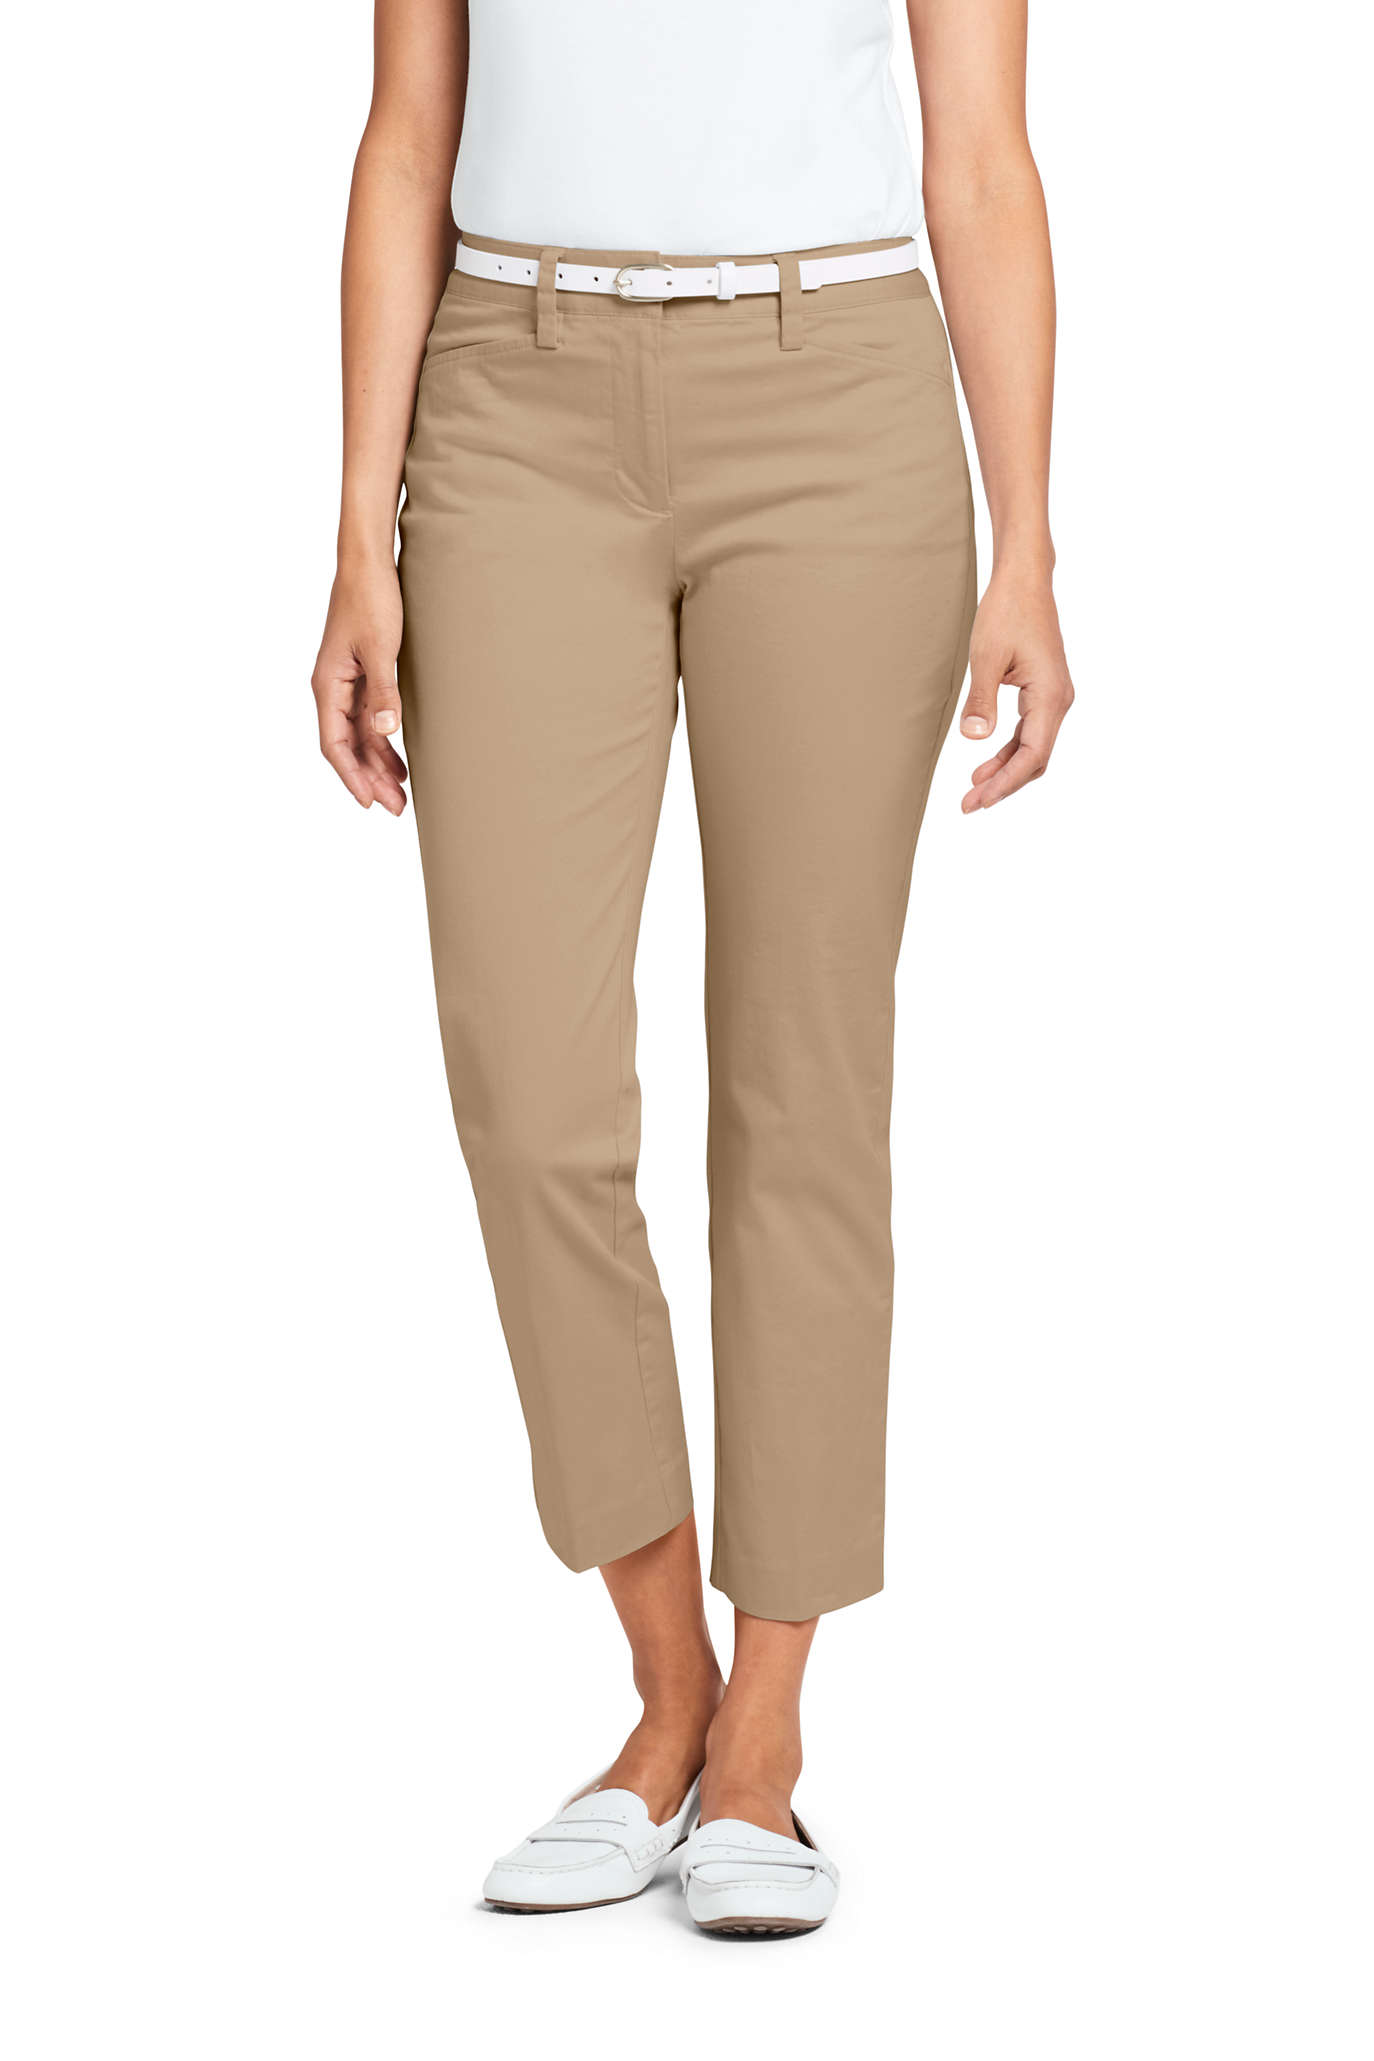 Women's Mid Rise Chino Crop Pant